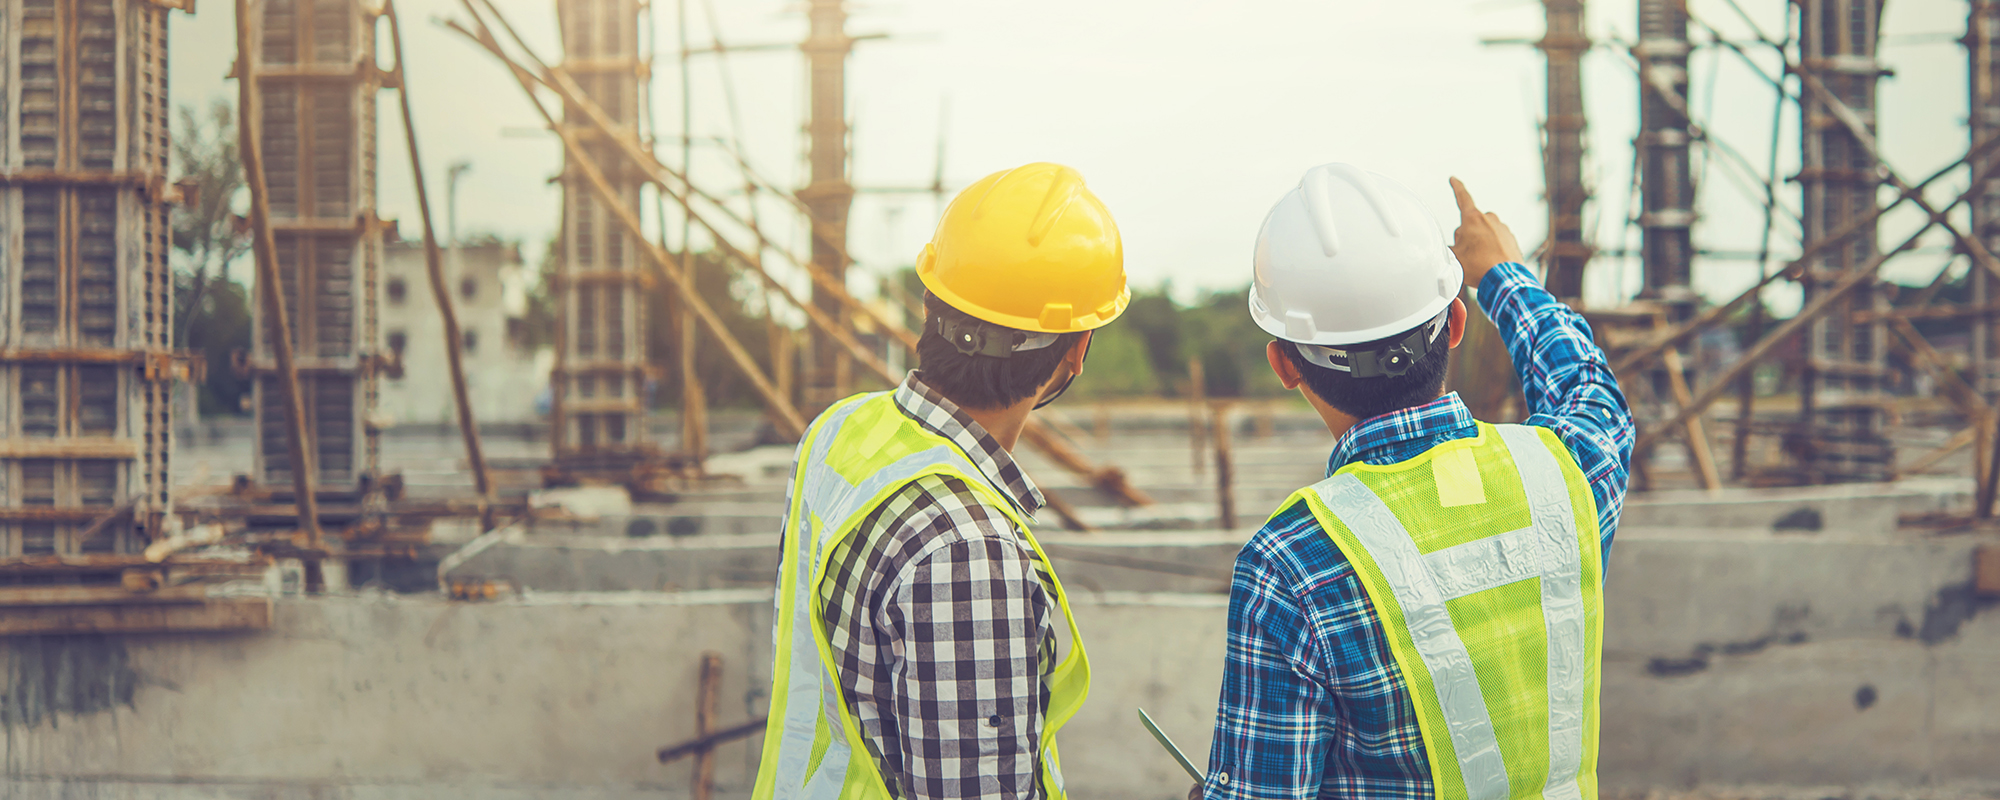 Two construction workers discussing the project ahead.